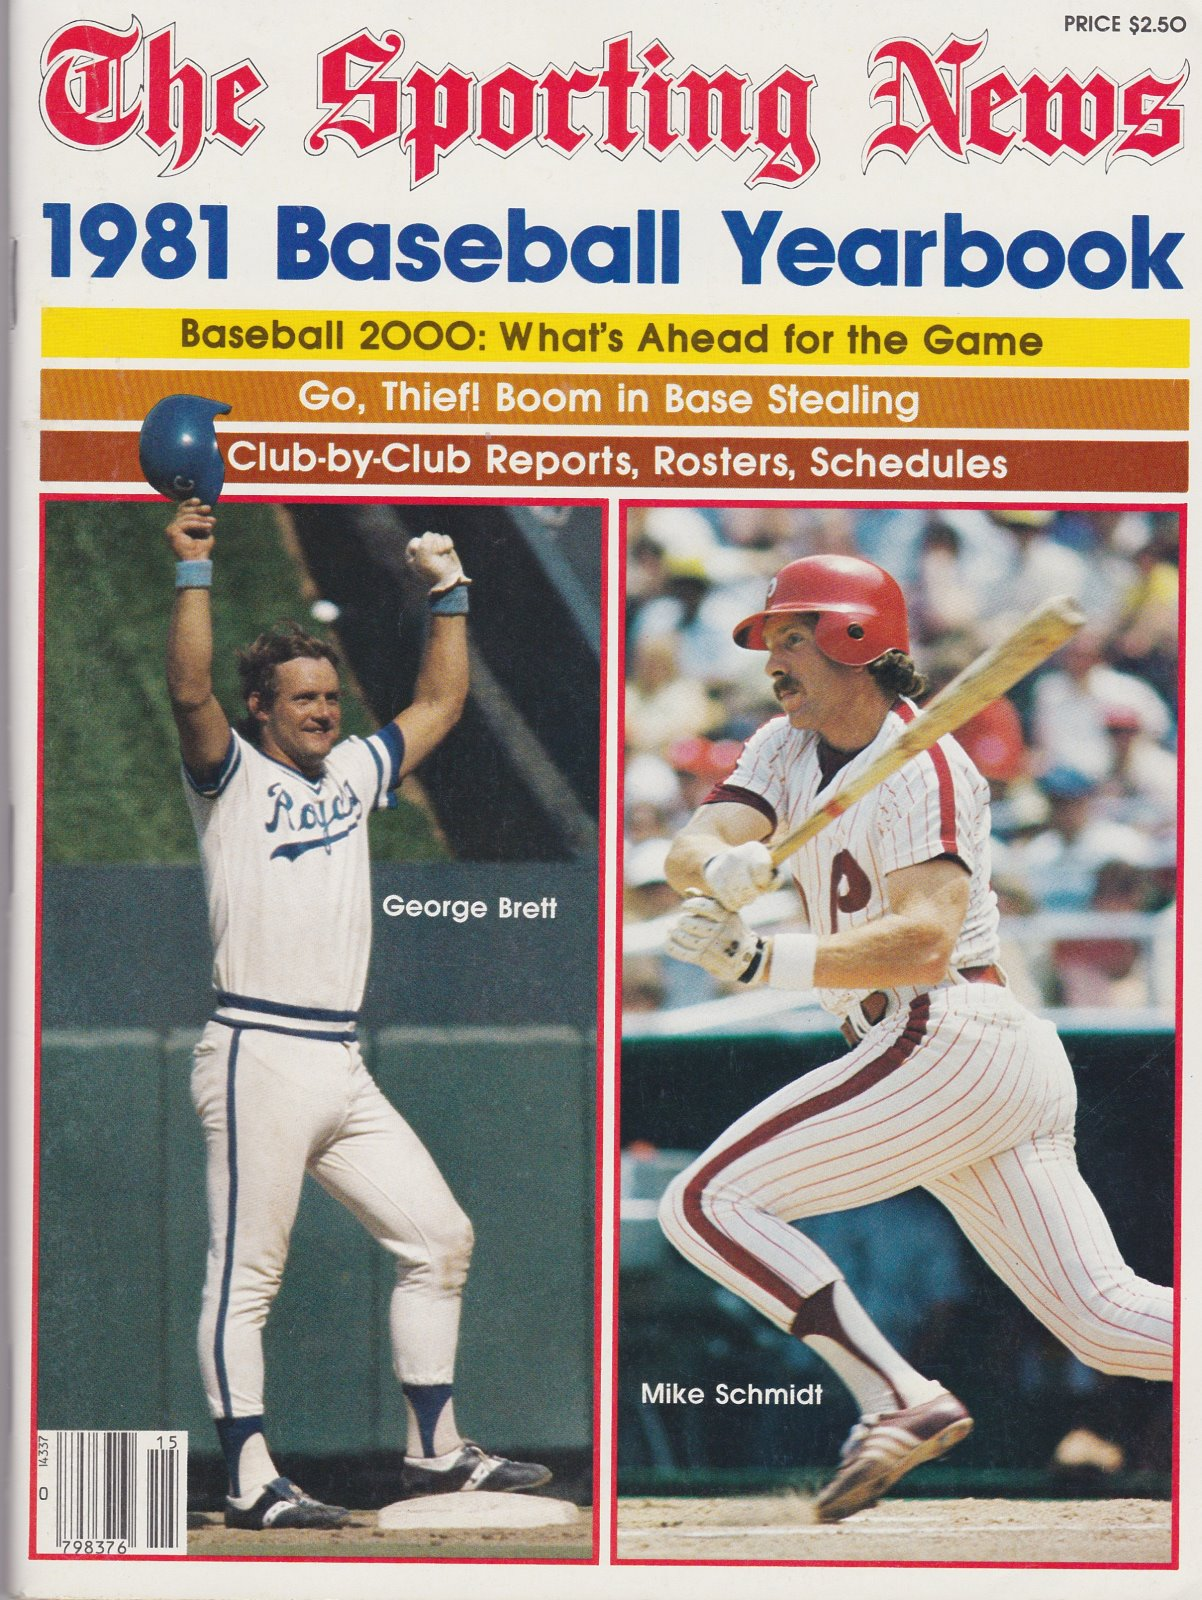 The Sporting News, 1981 Baseball Yearbook